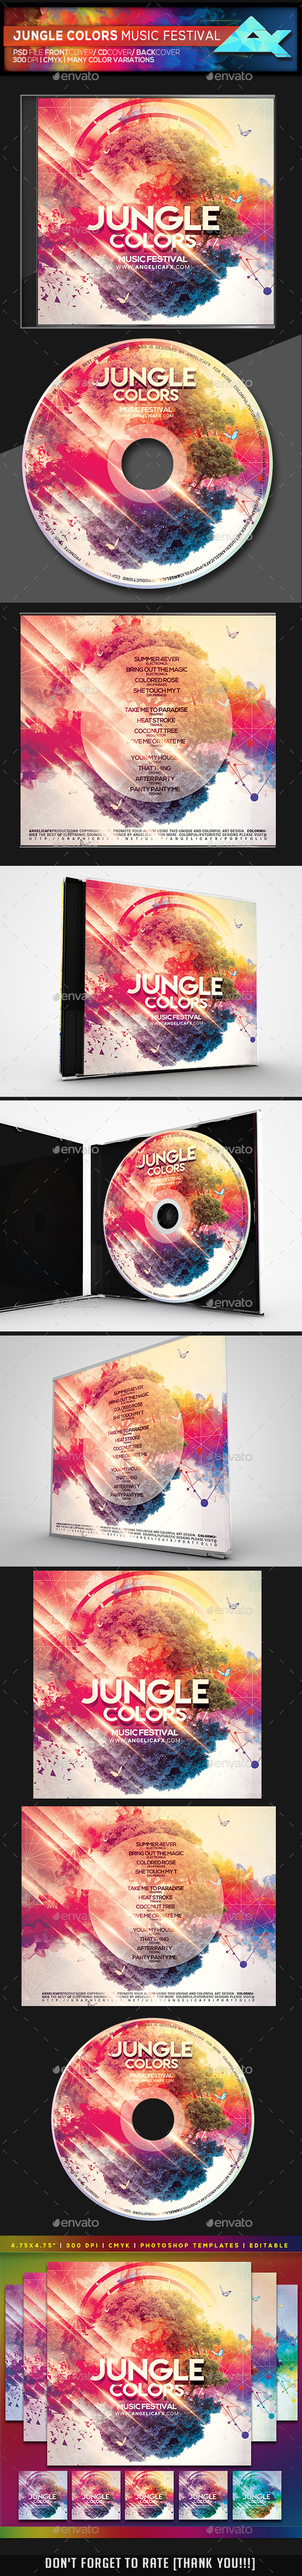 Jungle Colors CD/DVD Photoshop Template - CD & DVD Artwork Print Templates